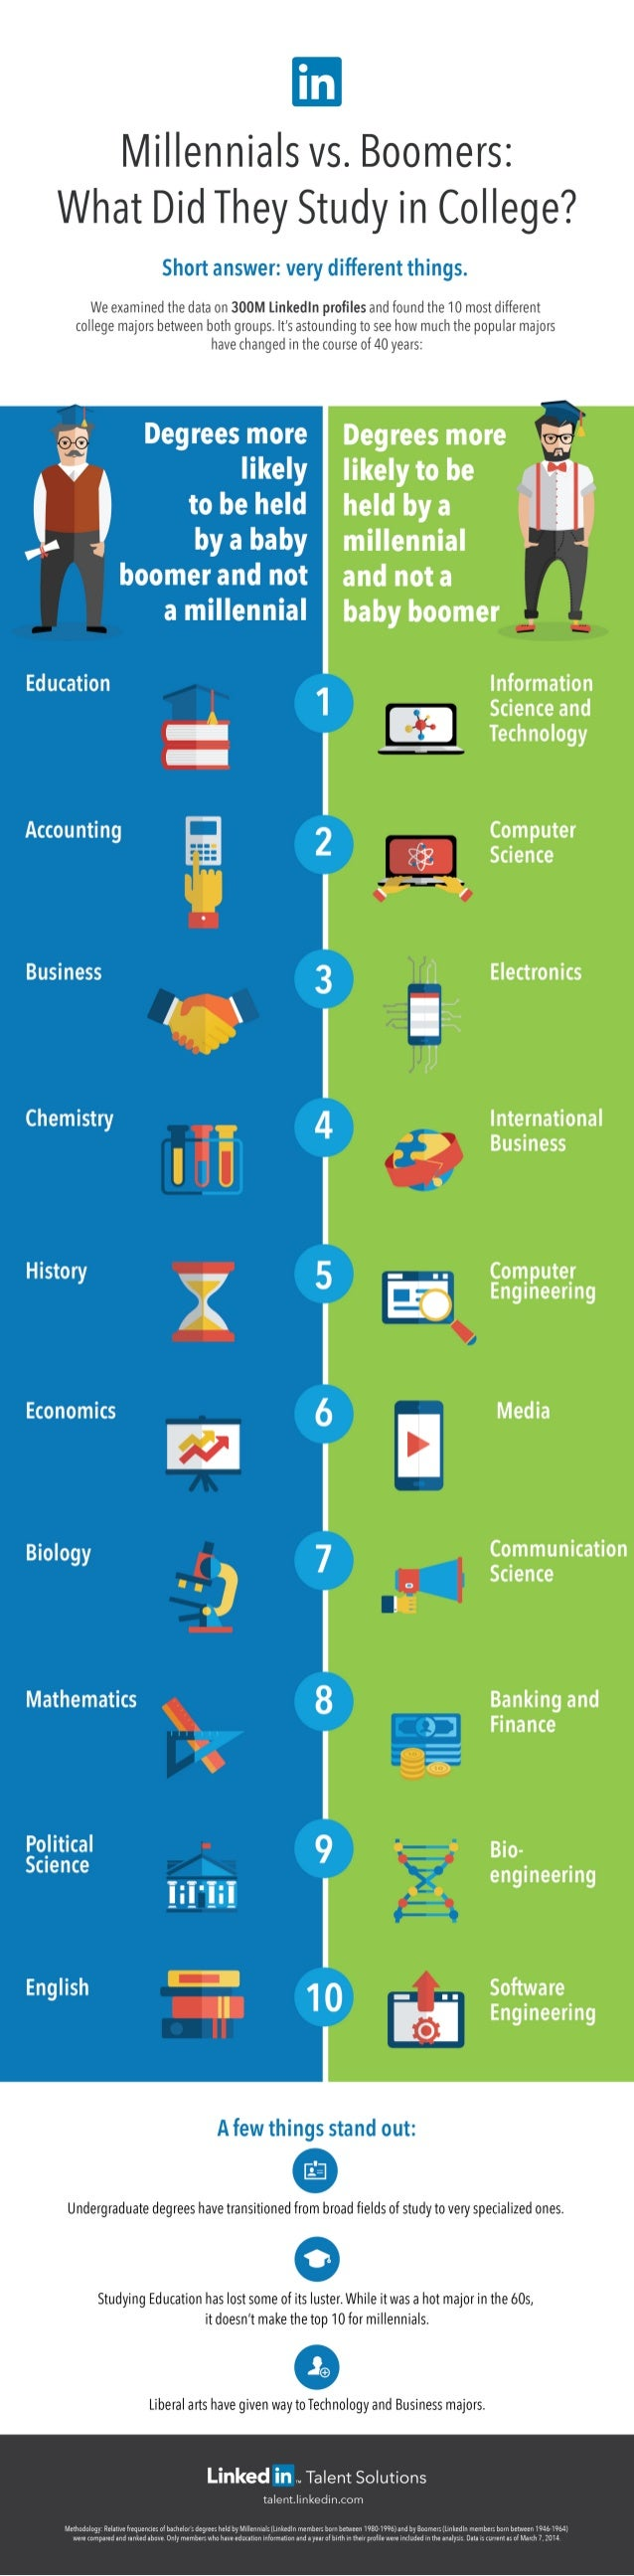 The 10 College Majors Millennials are More Likely to Have Compared to Boomers | INFOGRAPHIC